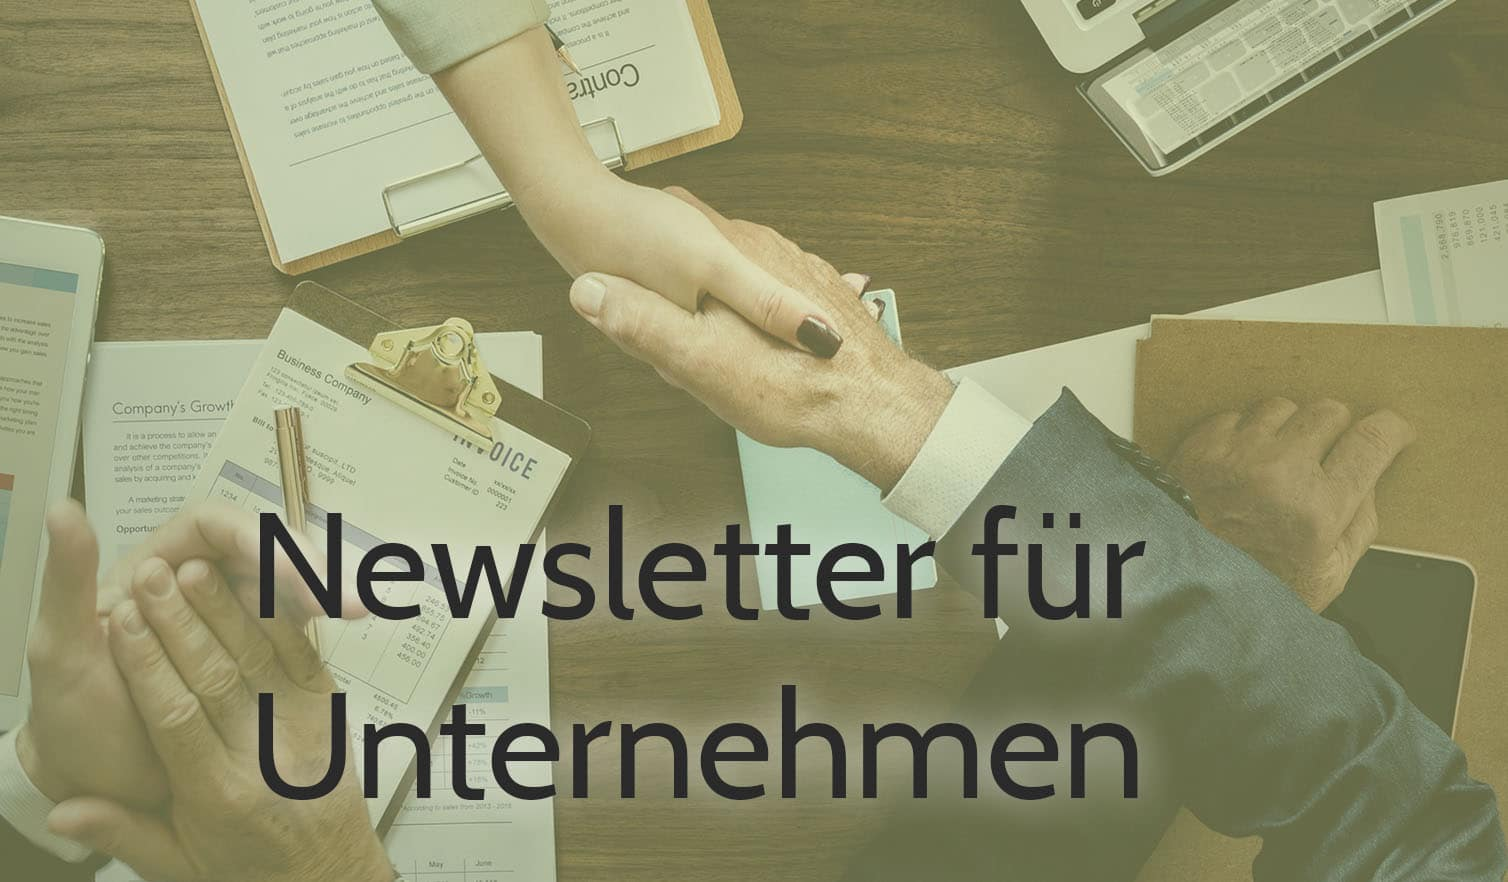 gruverde newsletter-marketing fur unternehmen hände